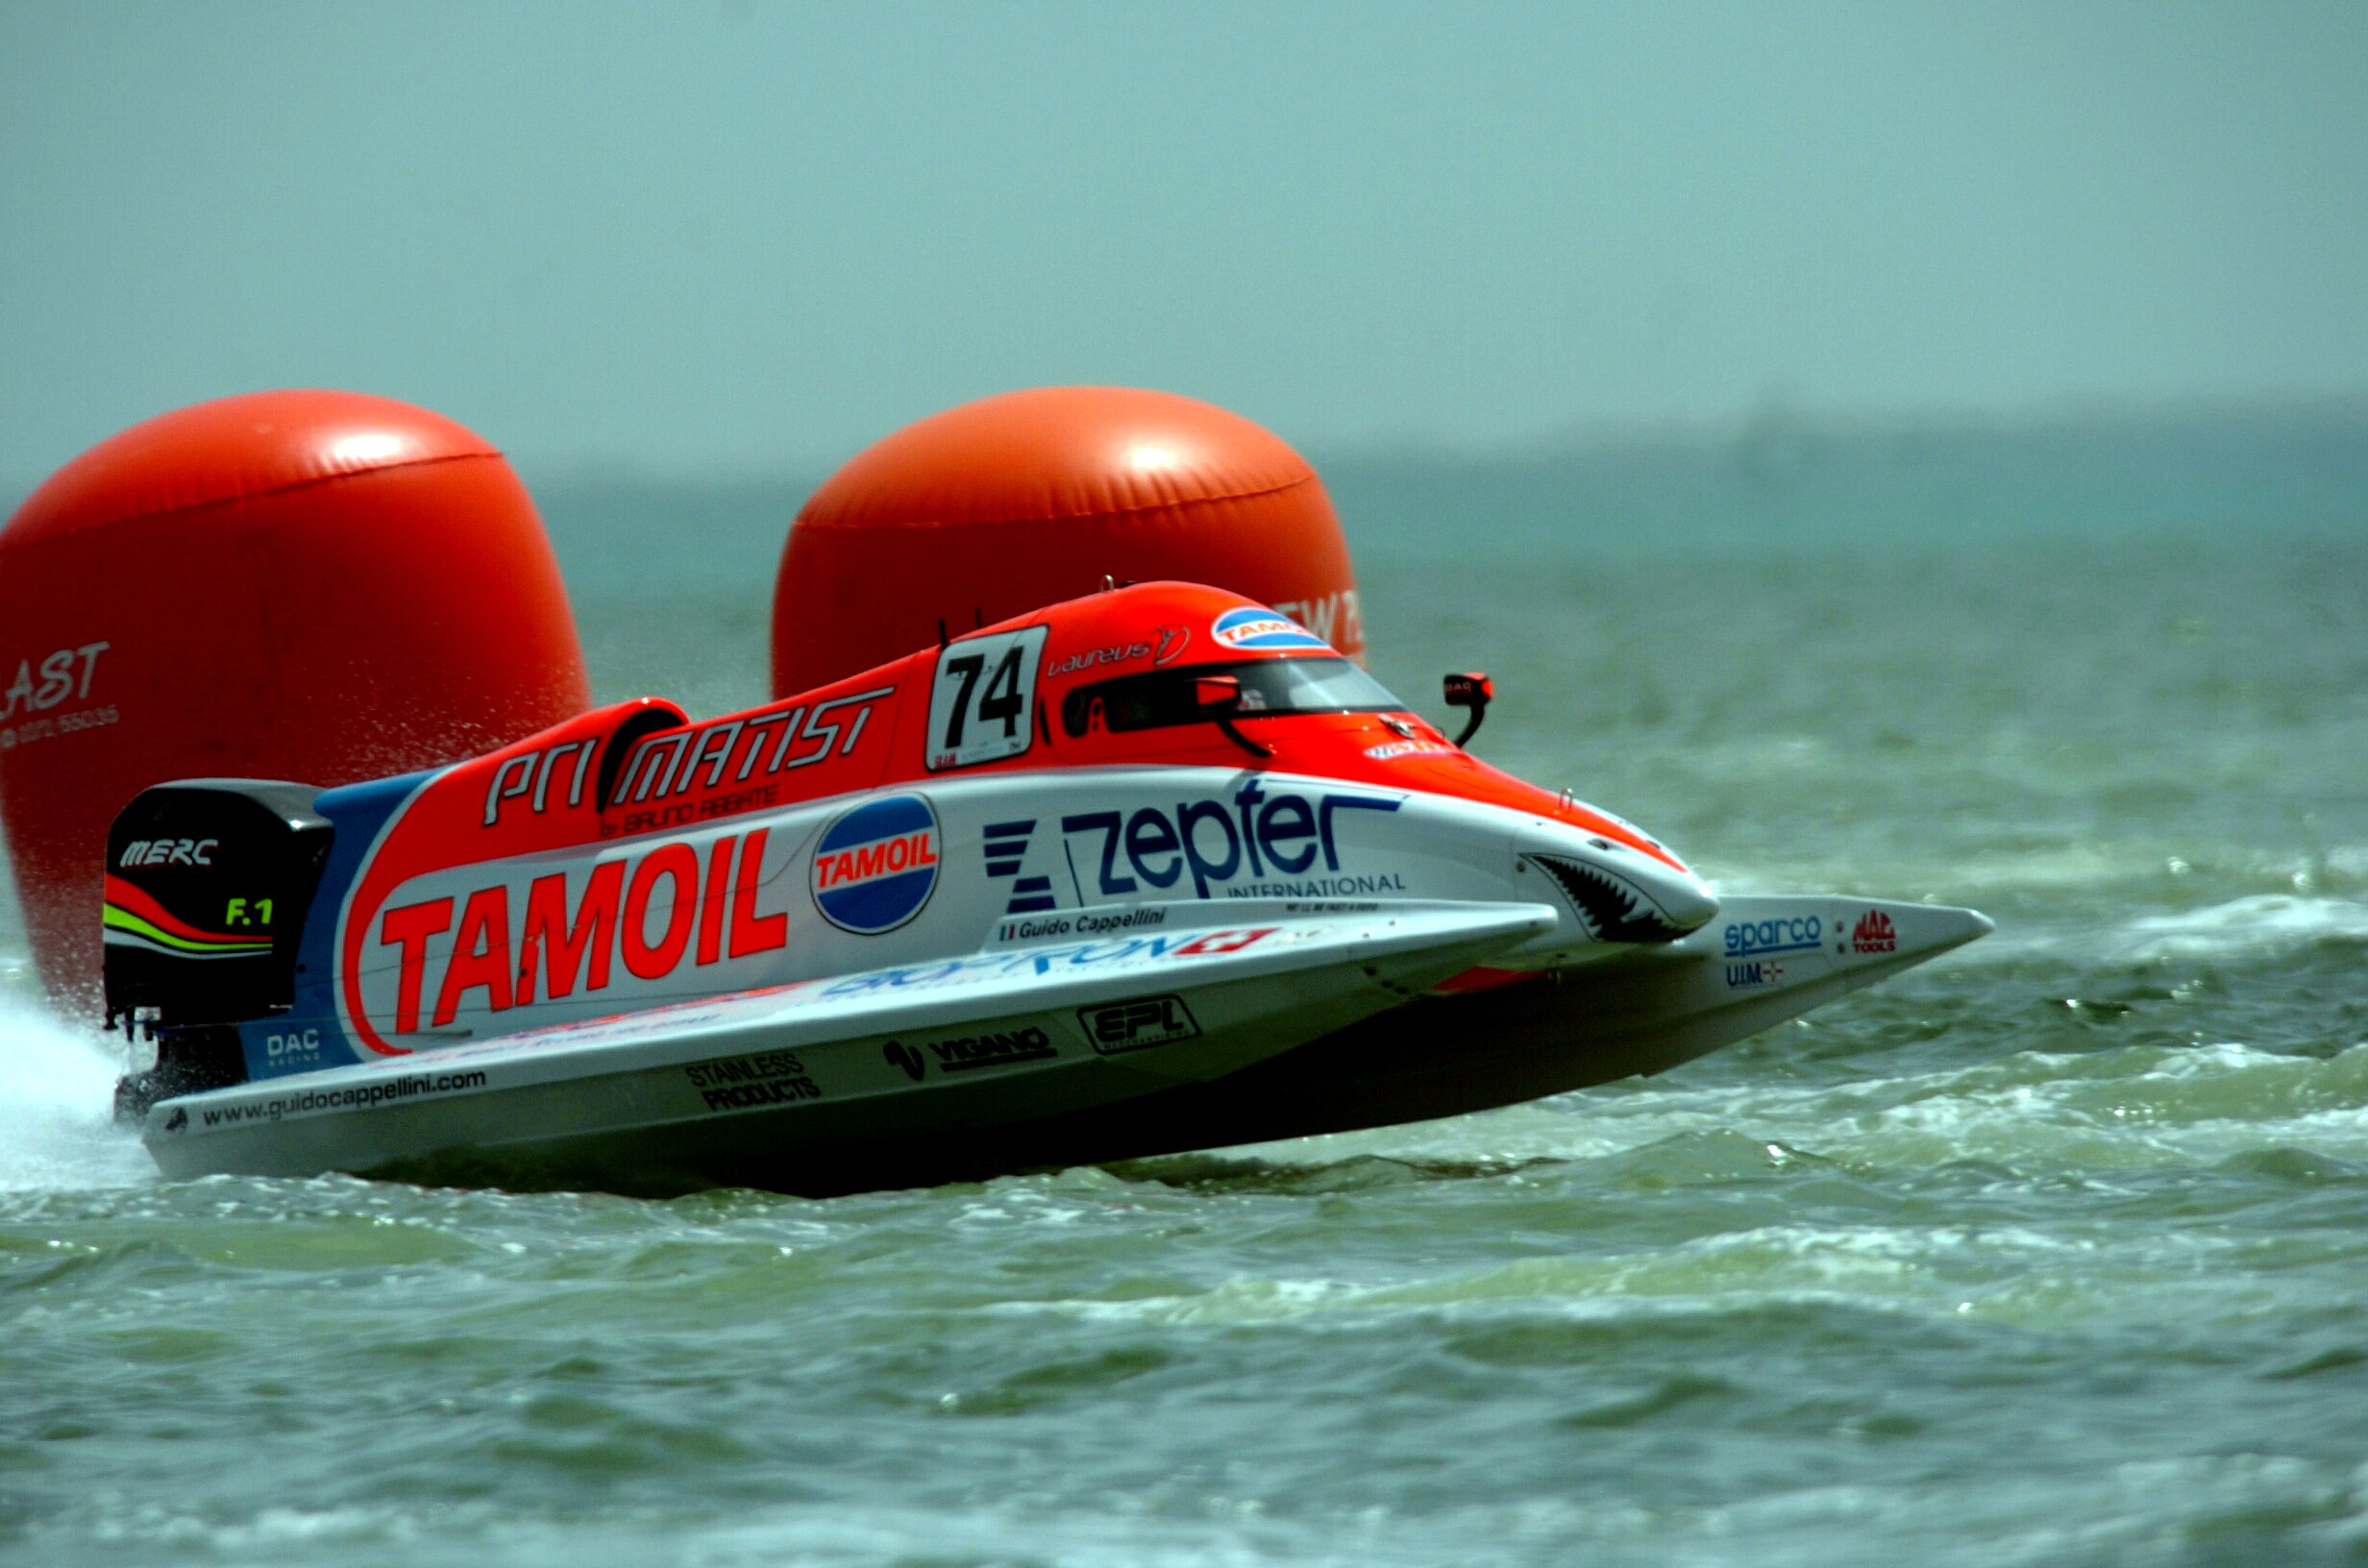 Doha - Qatar - 28 March, 2008 - Timed Trials for the Qatar Grand Prix at Doha Corniche: Guido Cappellini Tamoil Team. This GP is the 1th leg of the UIM F1 Powerboat World Championship 2008. Picture by Vittorio Ubertone/Idea Marketing.